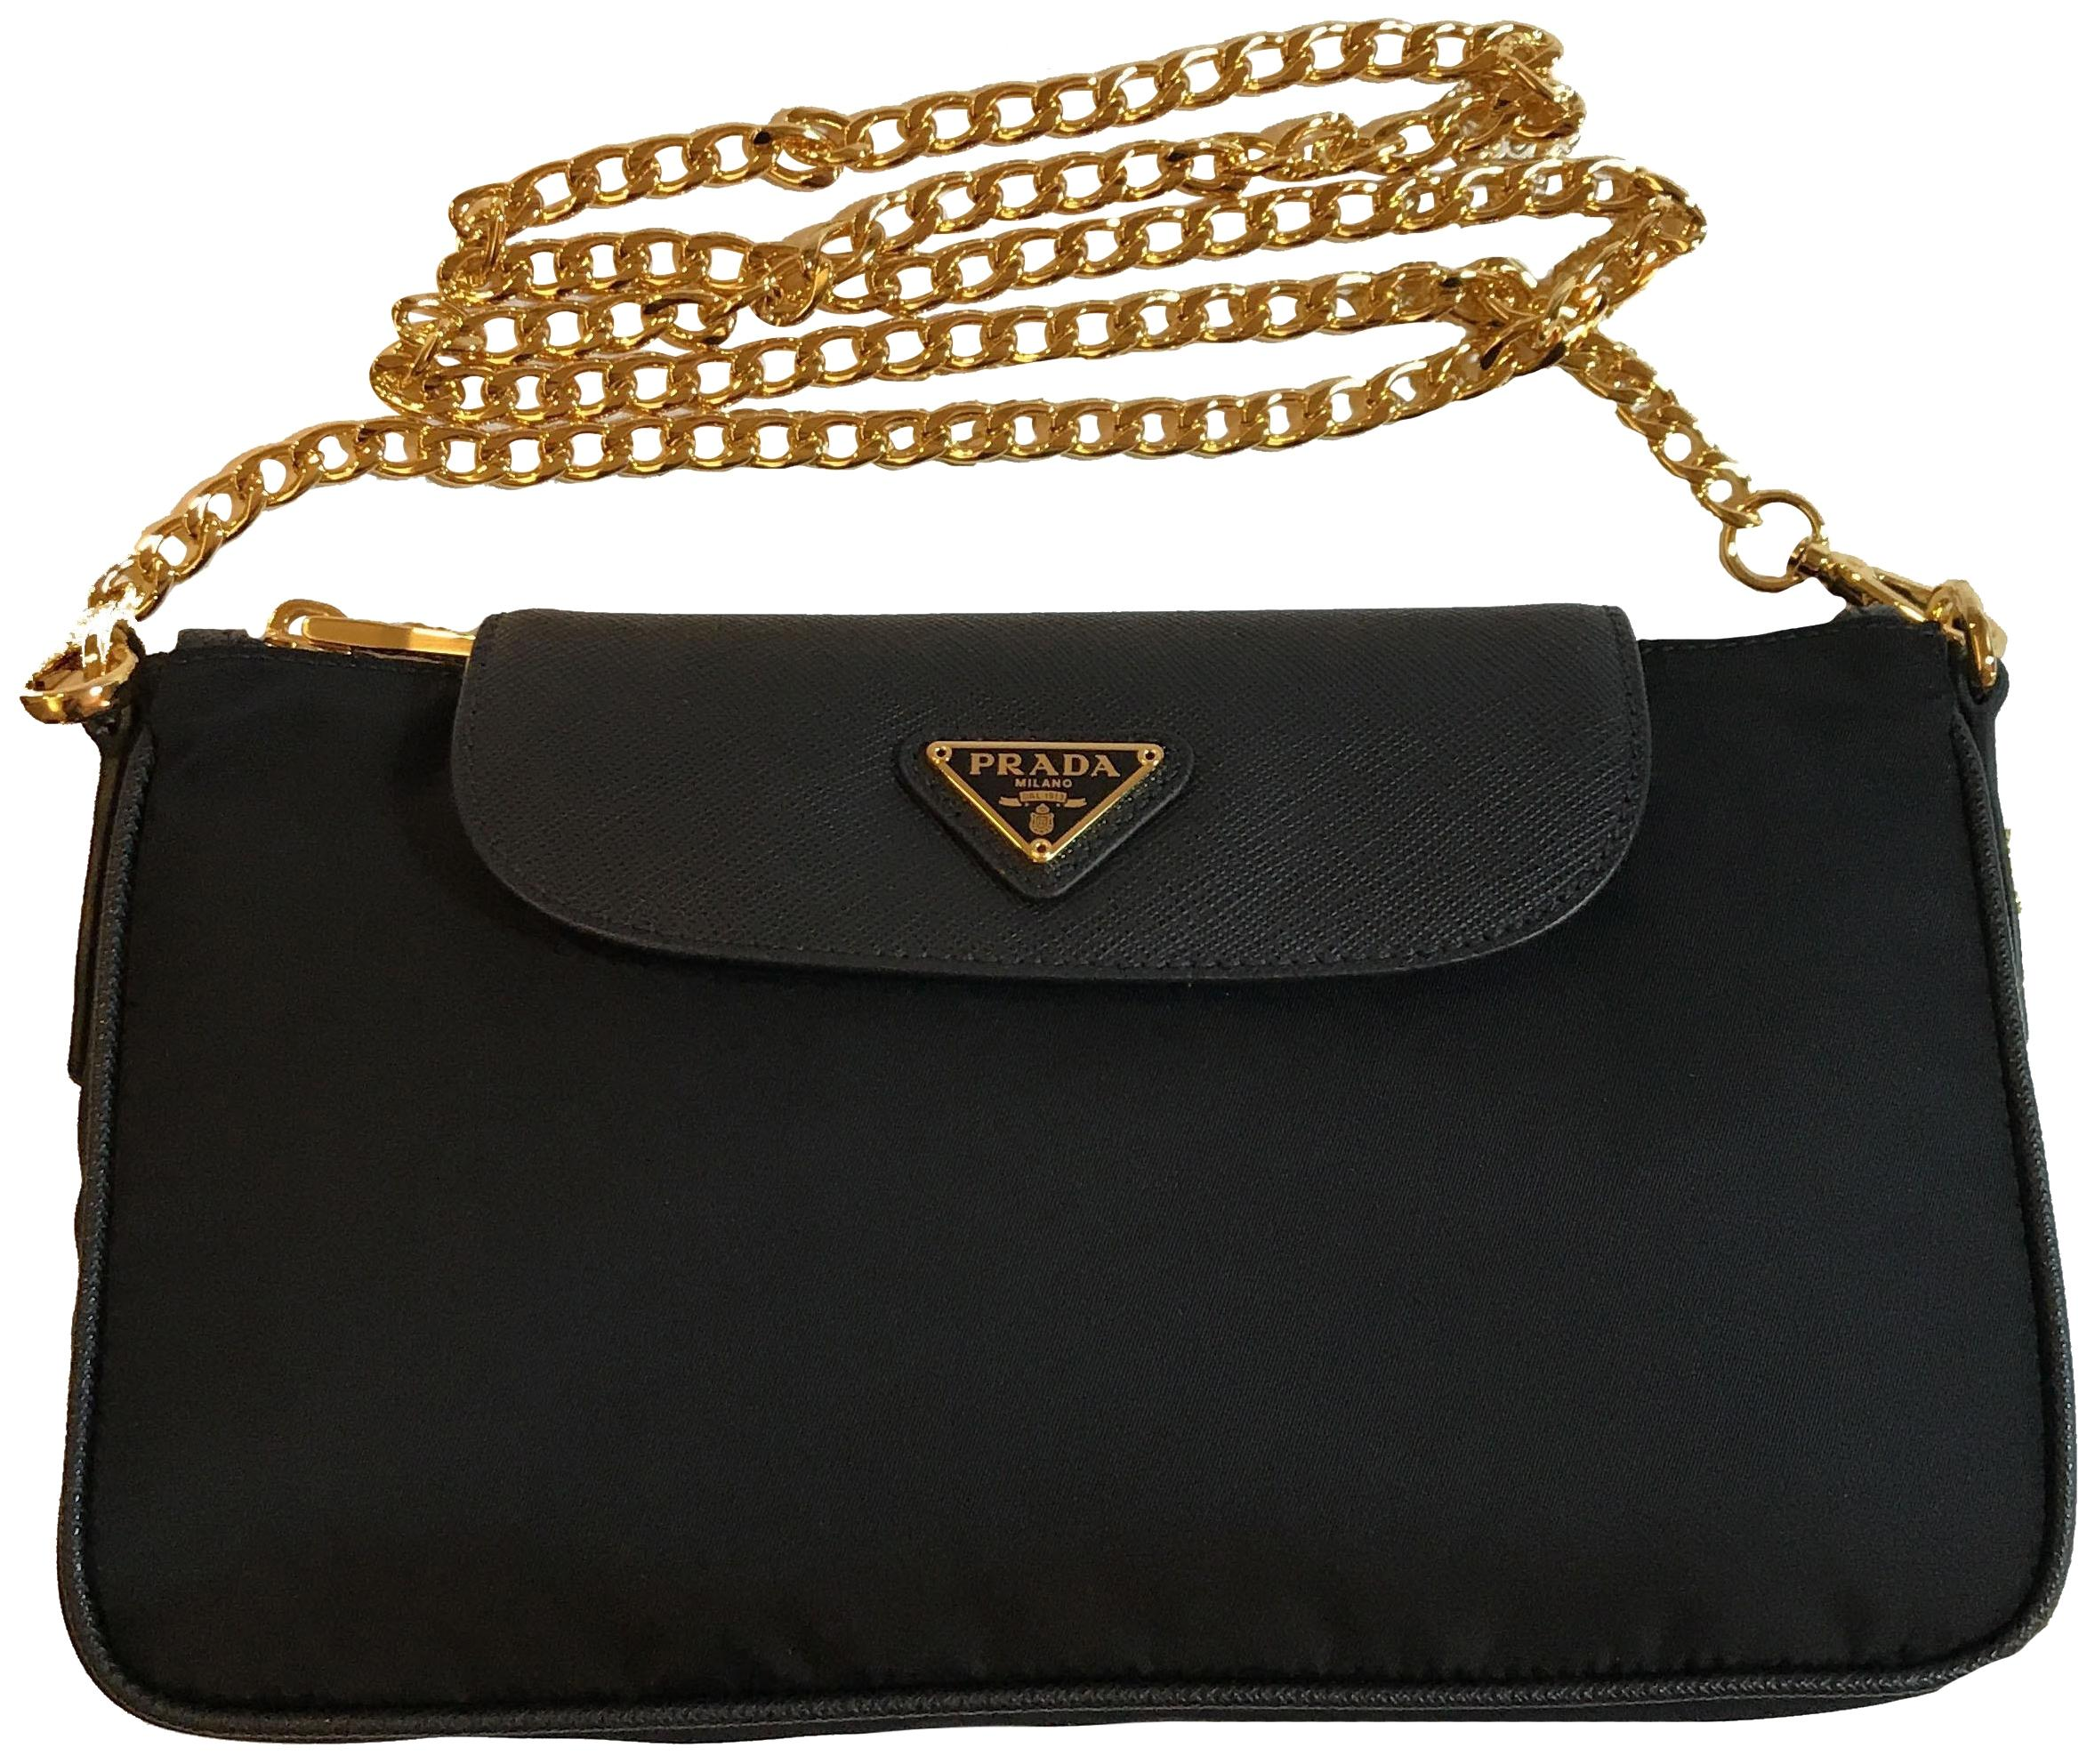 068d96a0134e ... official prada womens chain cross body bag 7285a 94a97